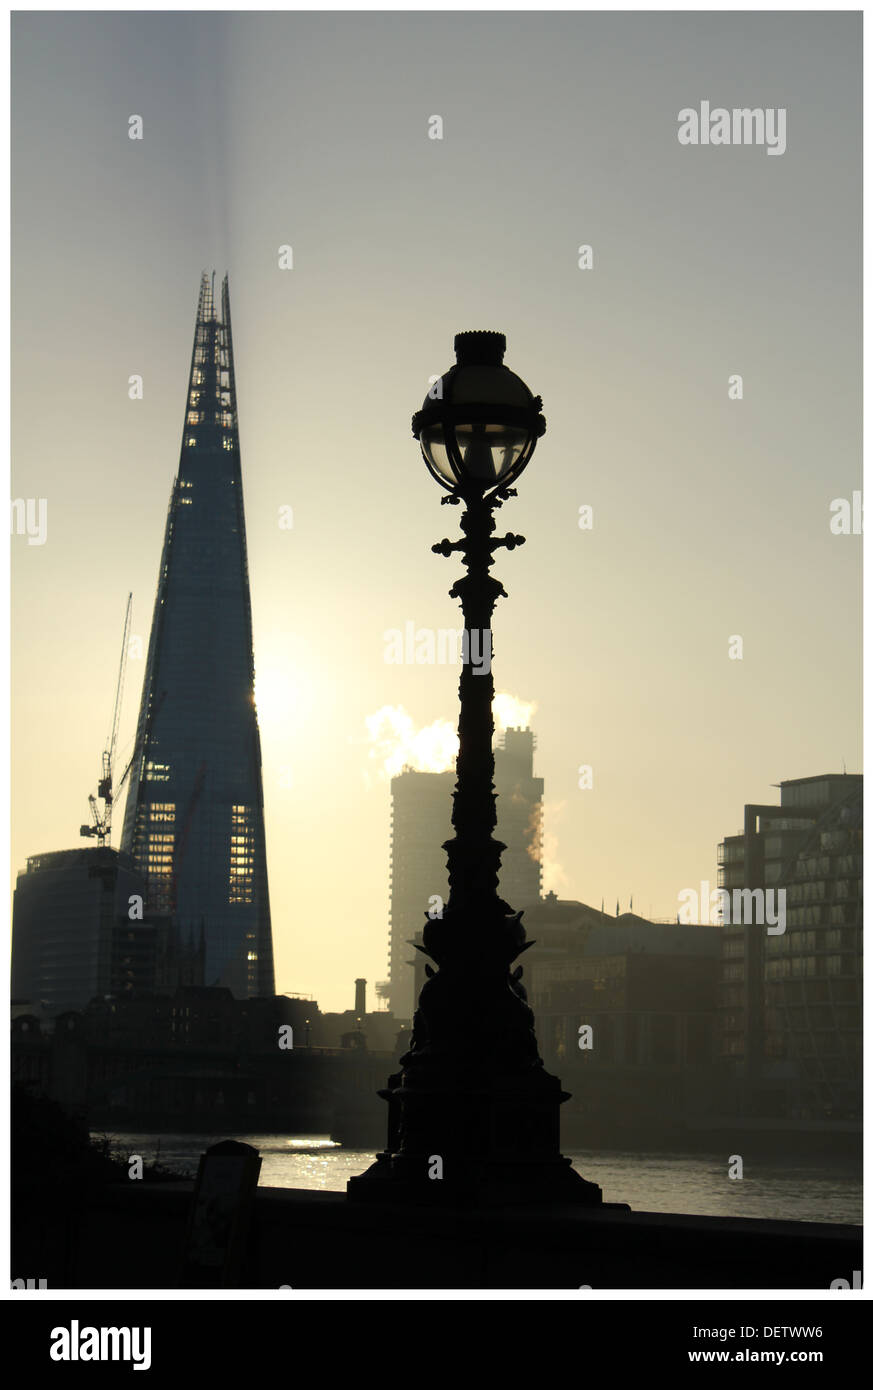 Old Lamps for New London Shard versus Old Street Lamp - Stock Image